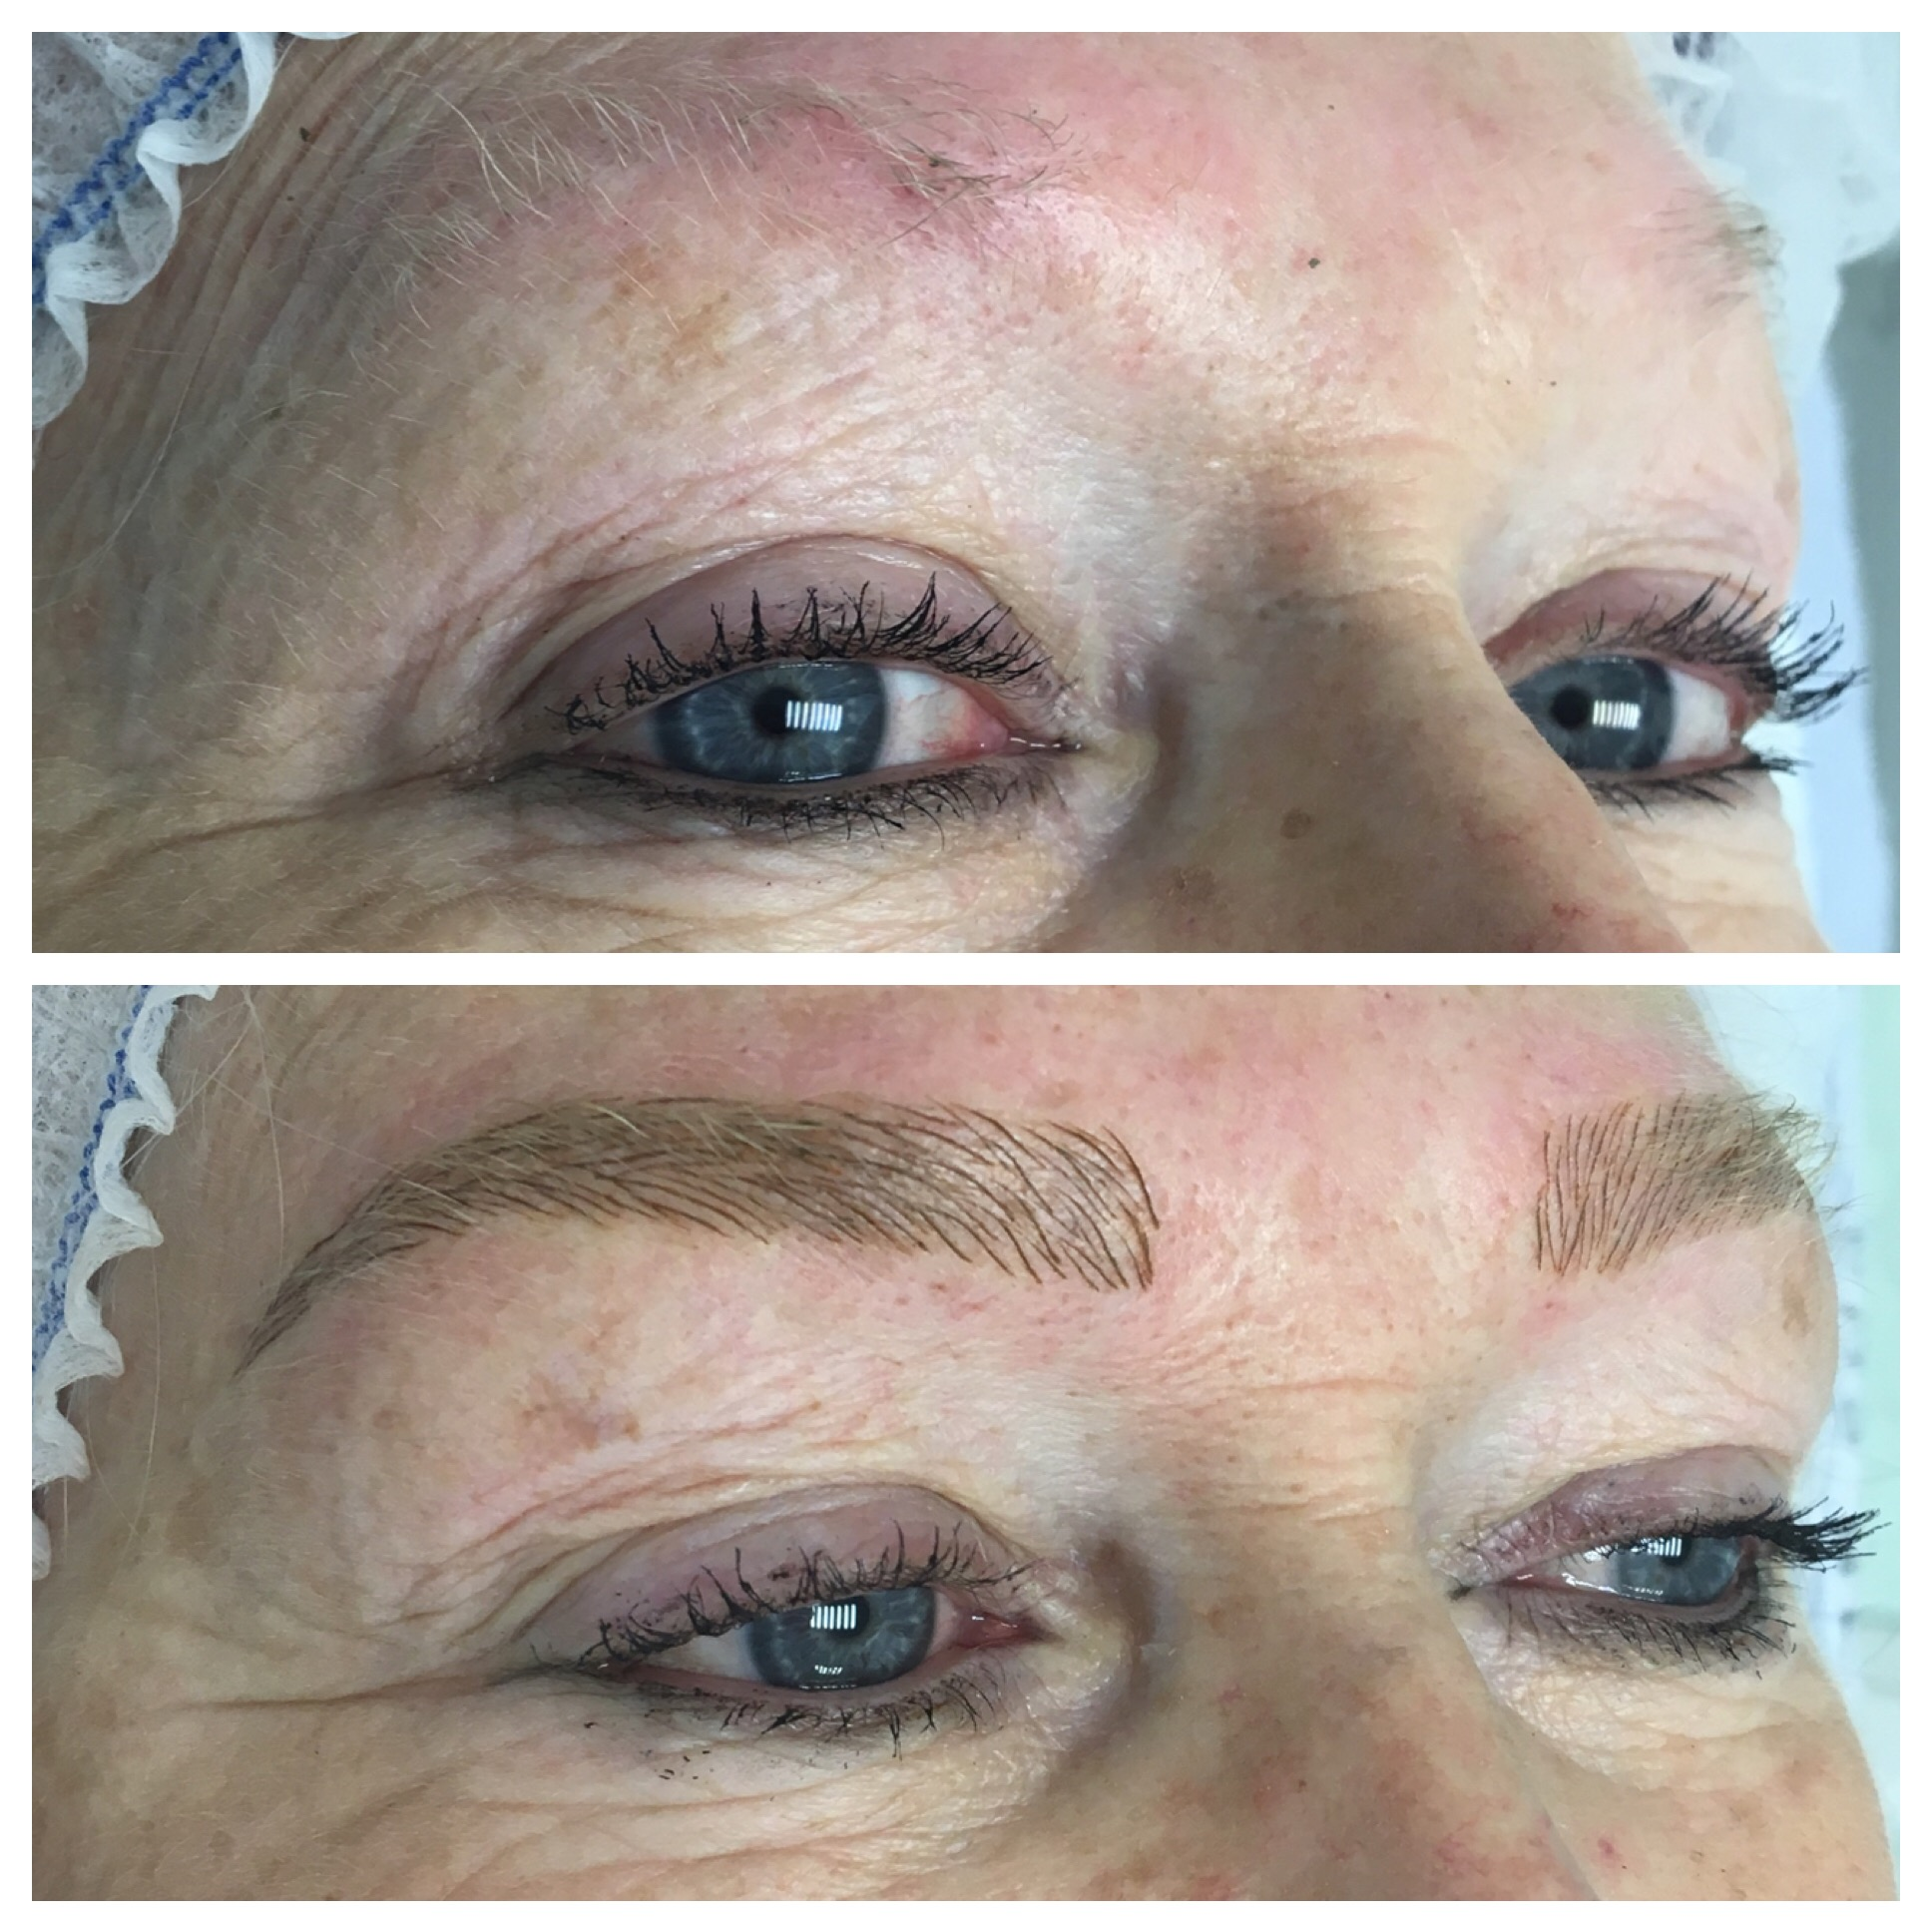 Permanent Makeup: Hairstroke eyebrows using microblading